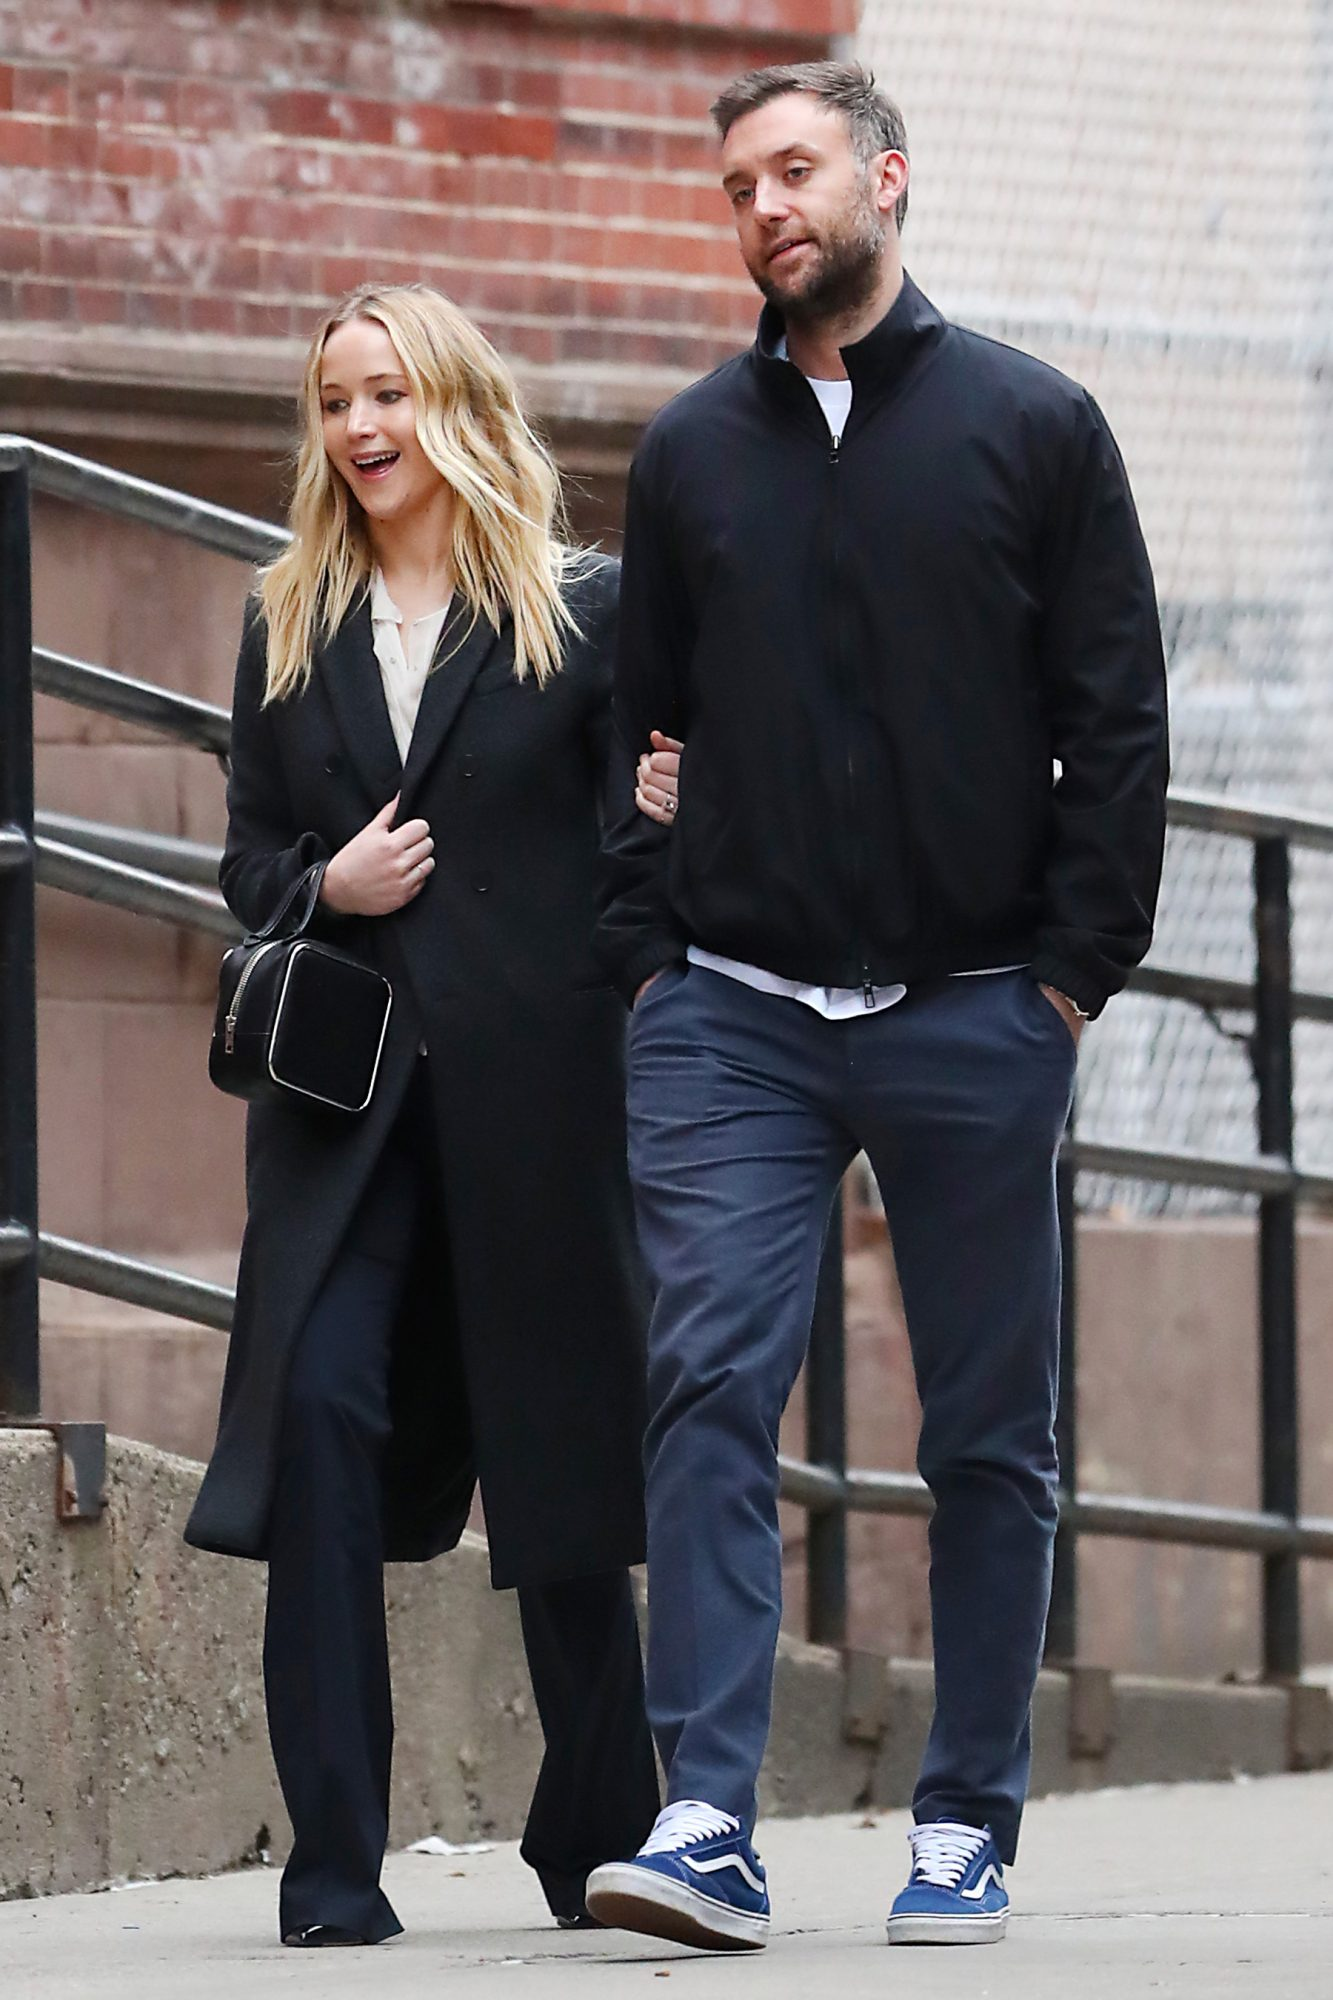 EXCLUSIVE: Jennifer Lawrence and Cooke Maroney Head out on a Date in New York City.